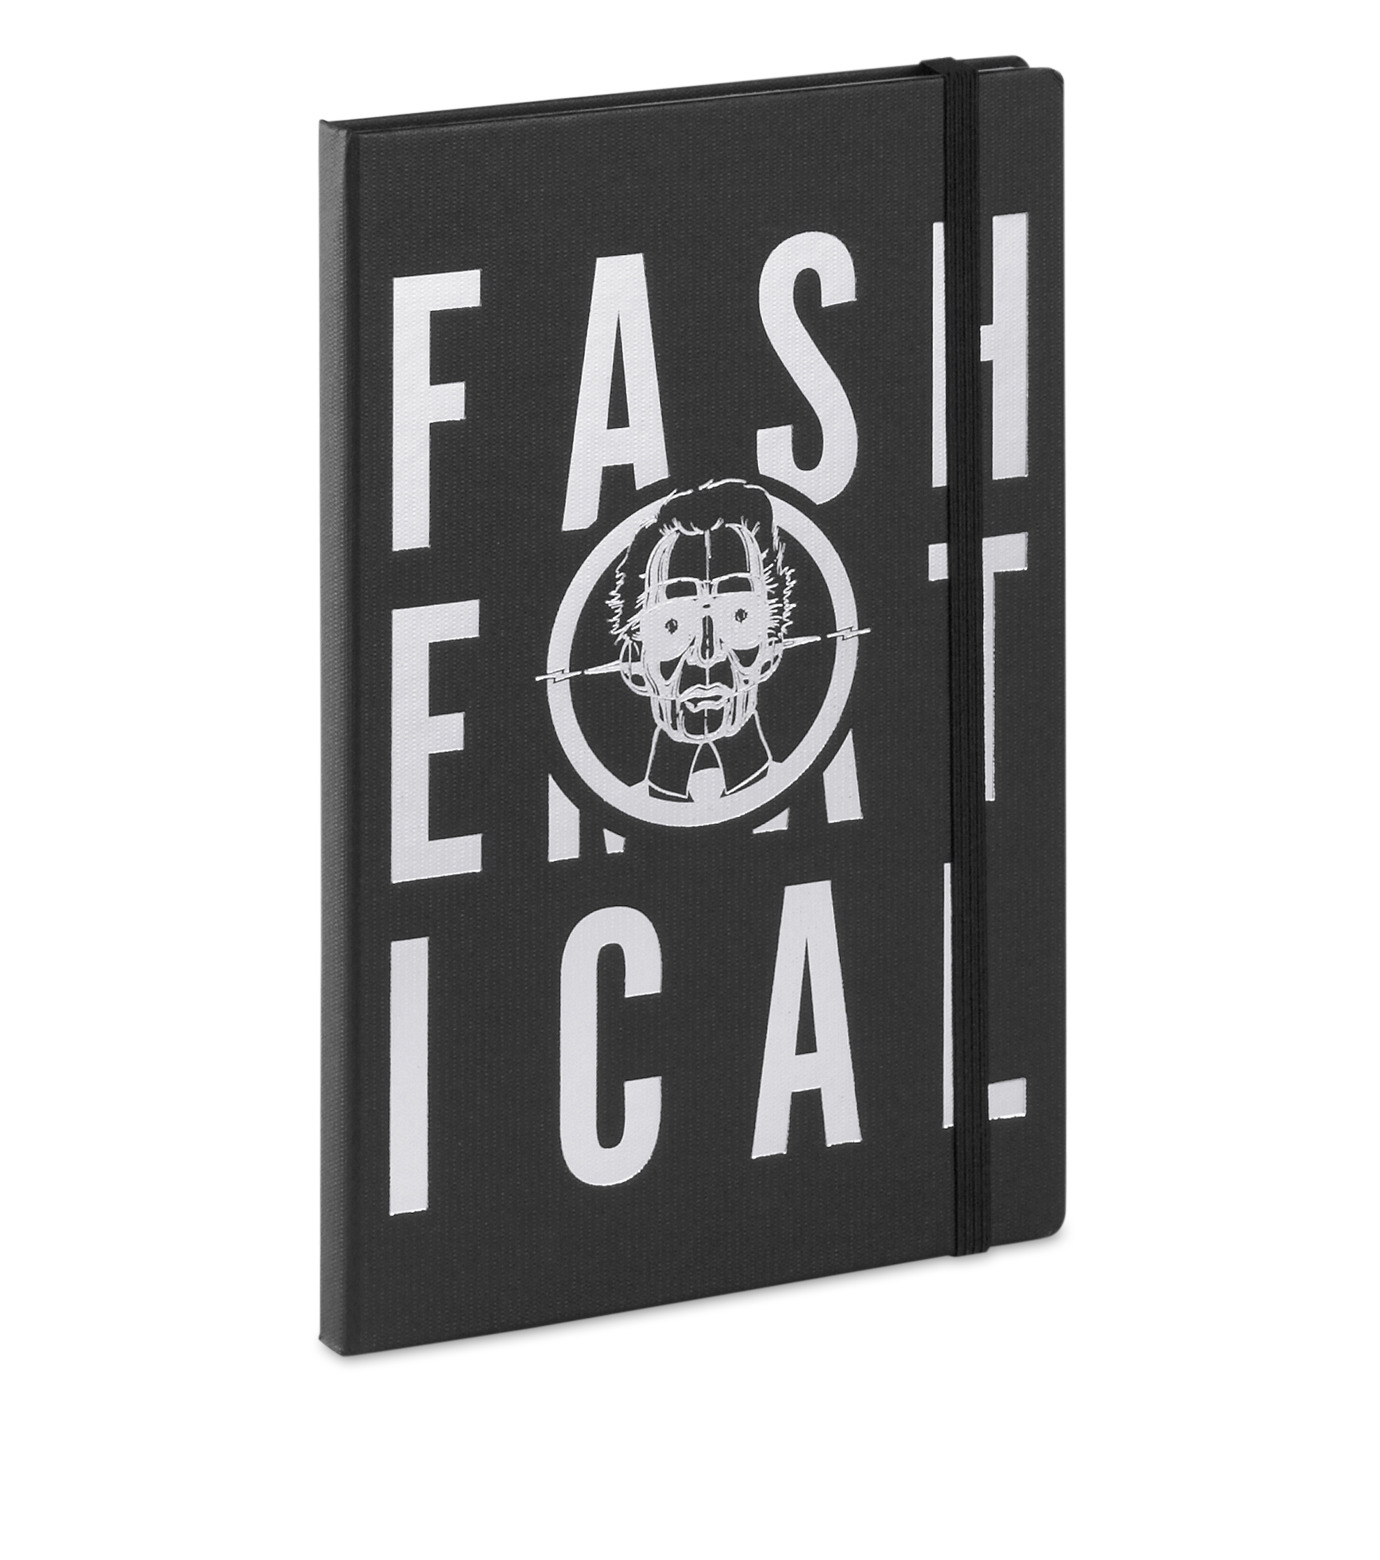 Fashematical(ファシェマティカル)のNote book-NONE(OTHER-GOODS/OTHER-GOODS)-Note-Karl 拡大詳細画像2